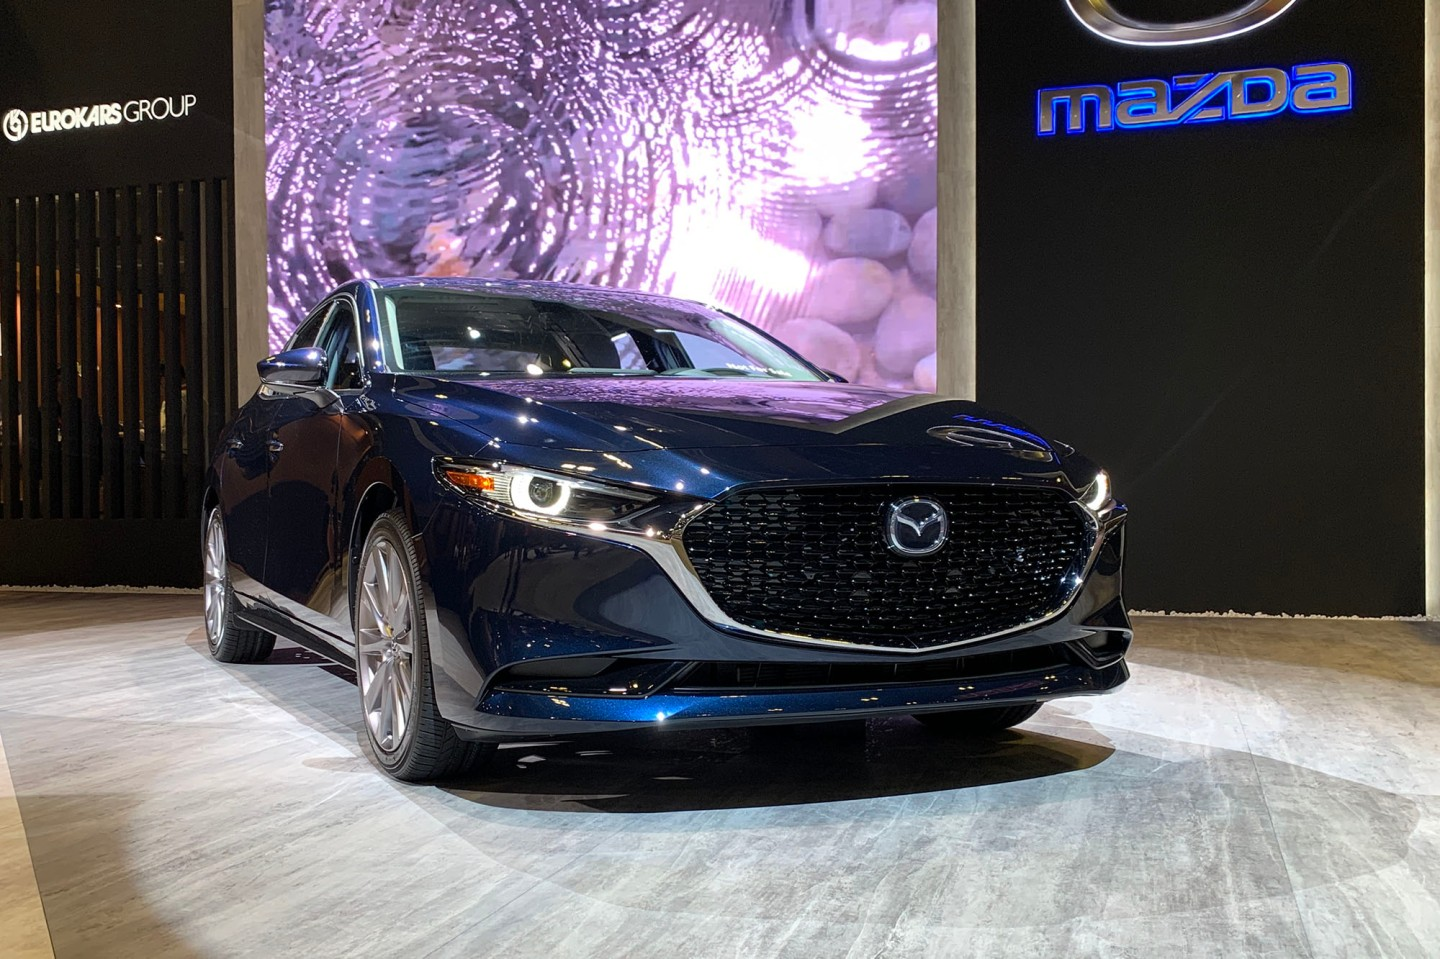 The All-New 2019 Mazda 3 Makes ASEAN Preview